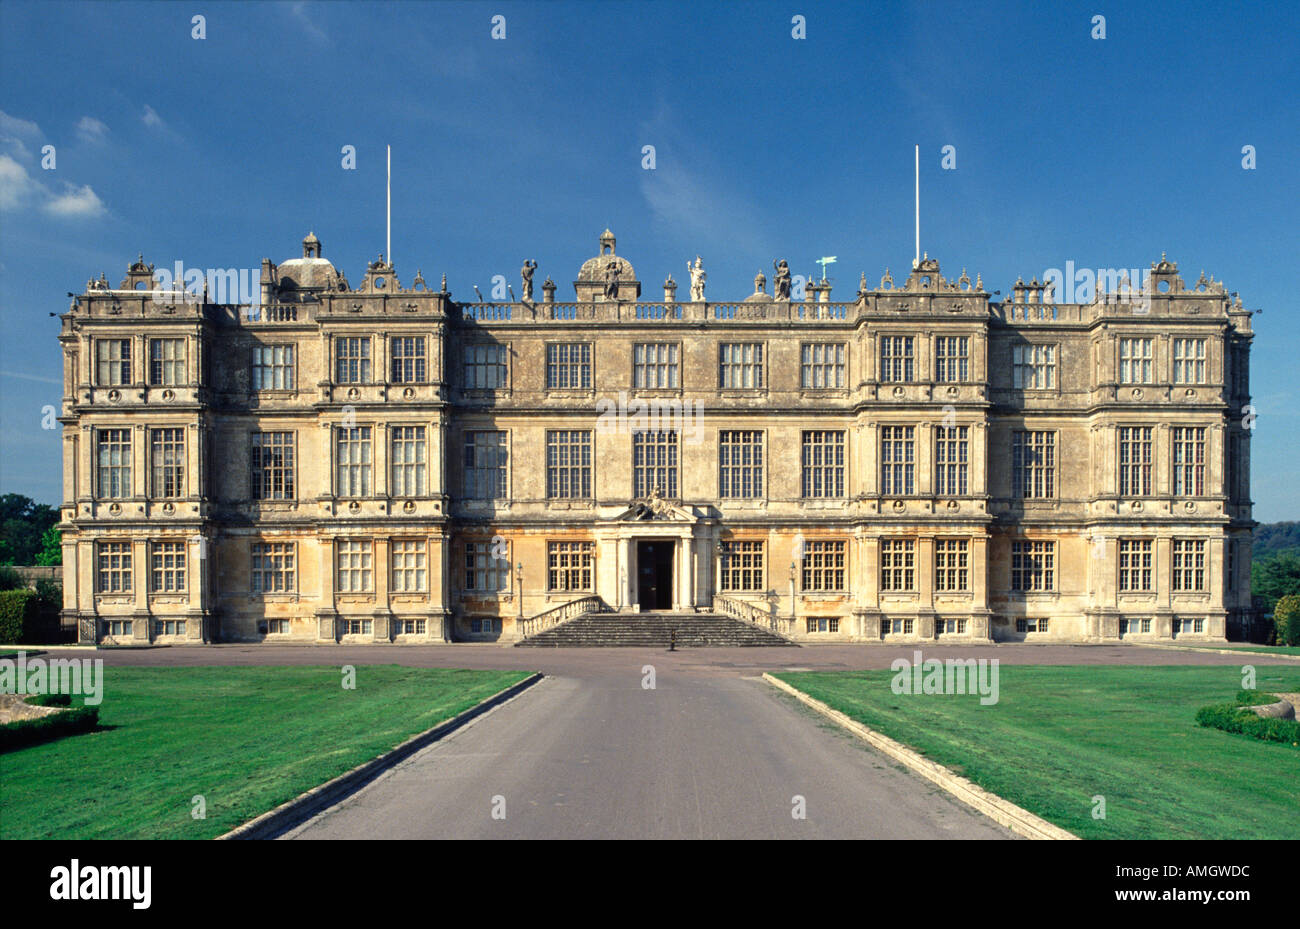 Longleat House Wiltshire England UK Home of the Marquis of Bath - Stock Image